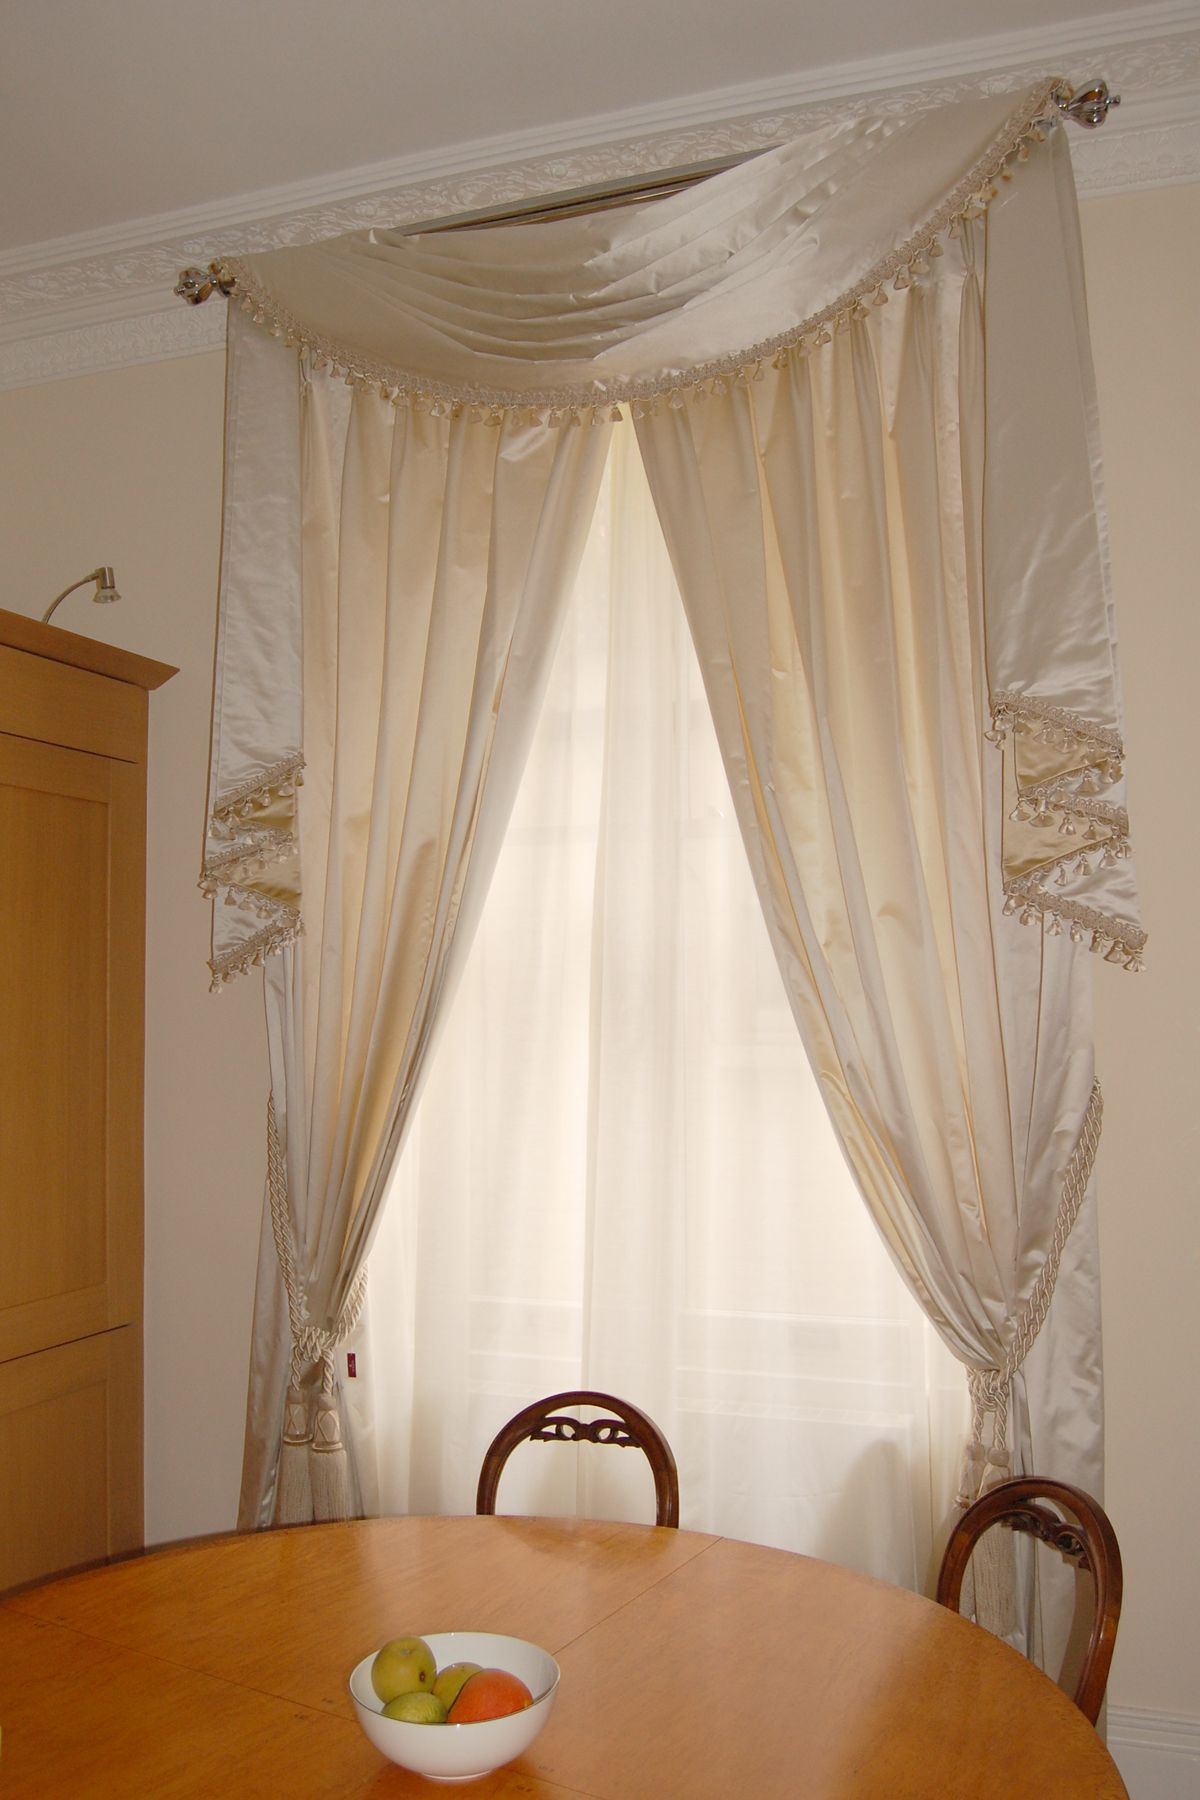 Swag And Tail With Satin Curtains Yards Of Style Curtains Swags Tails Curtains With Blinds